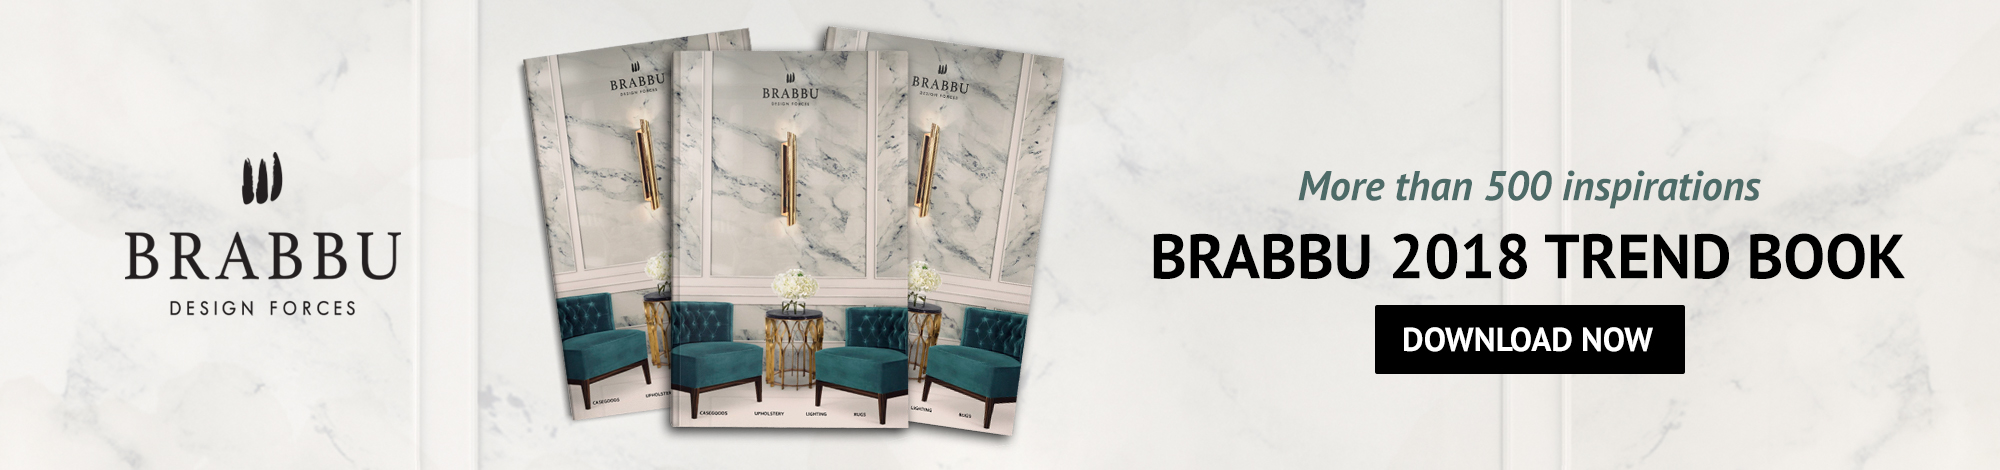 brabbu contract Meet BRABBU Contract, The Perfect Fit For Any Hospitality Project  1C5EB82328DCFD5BD10428DB124BD945082C079483CACCDD2D pimgpsh fullsize distr 3